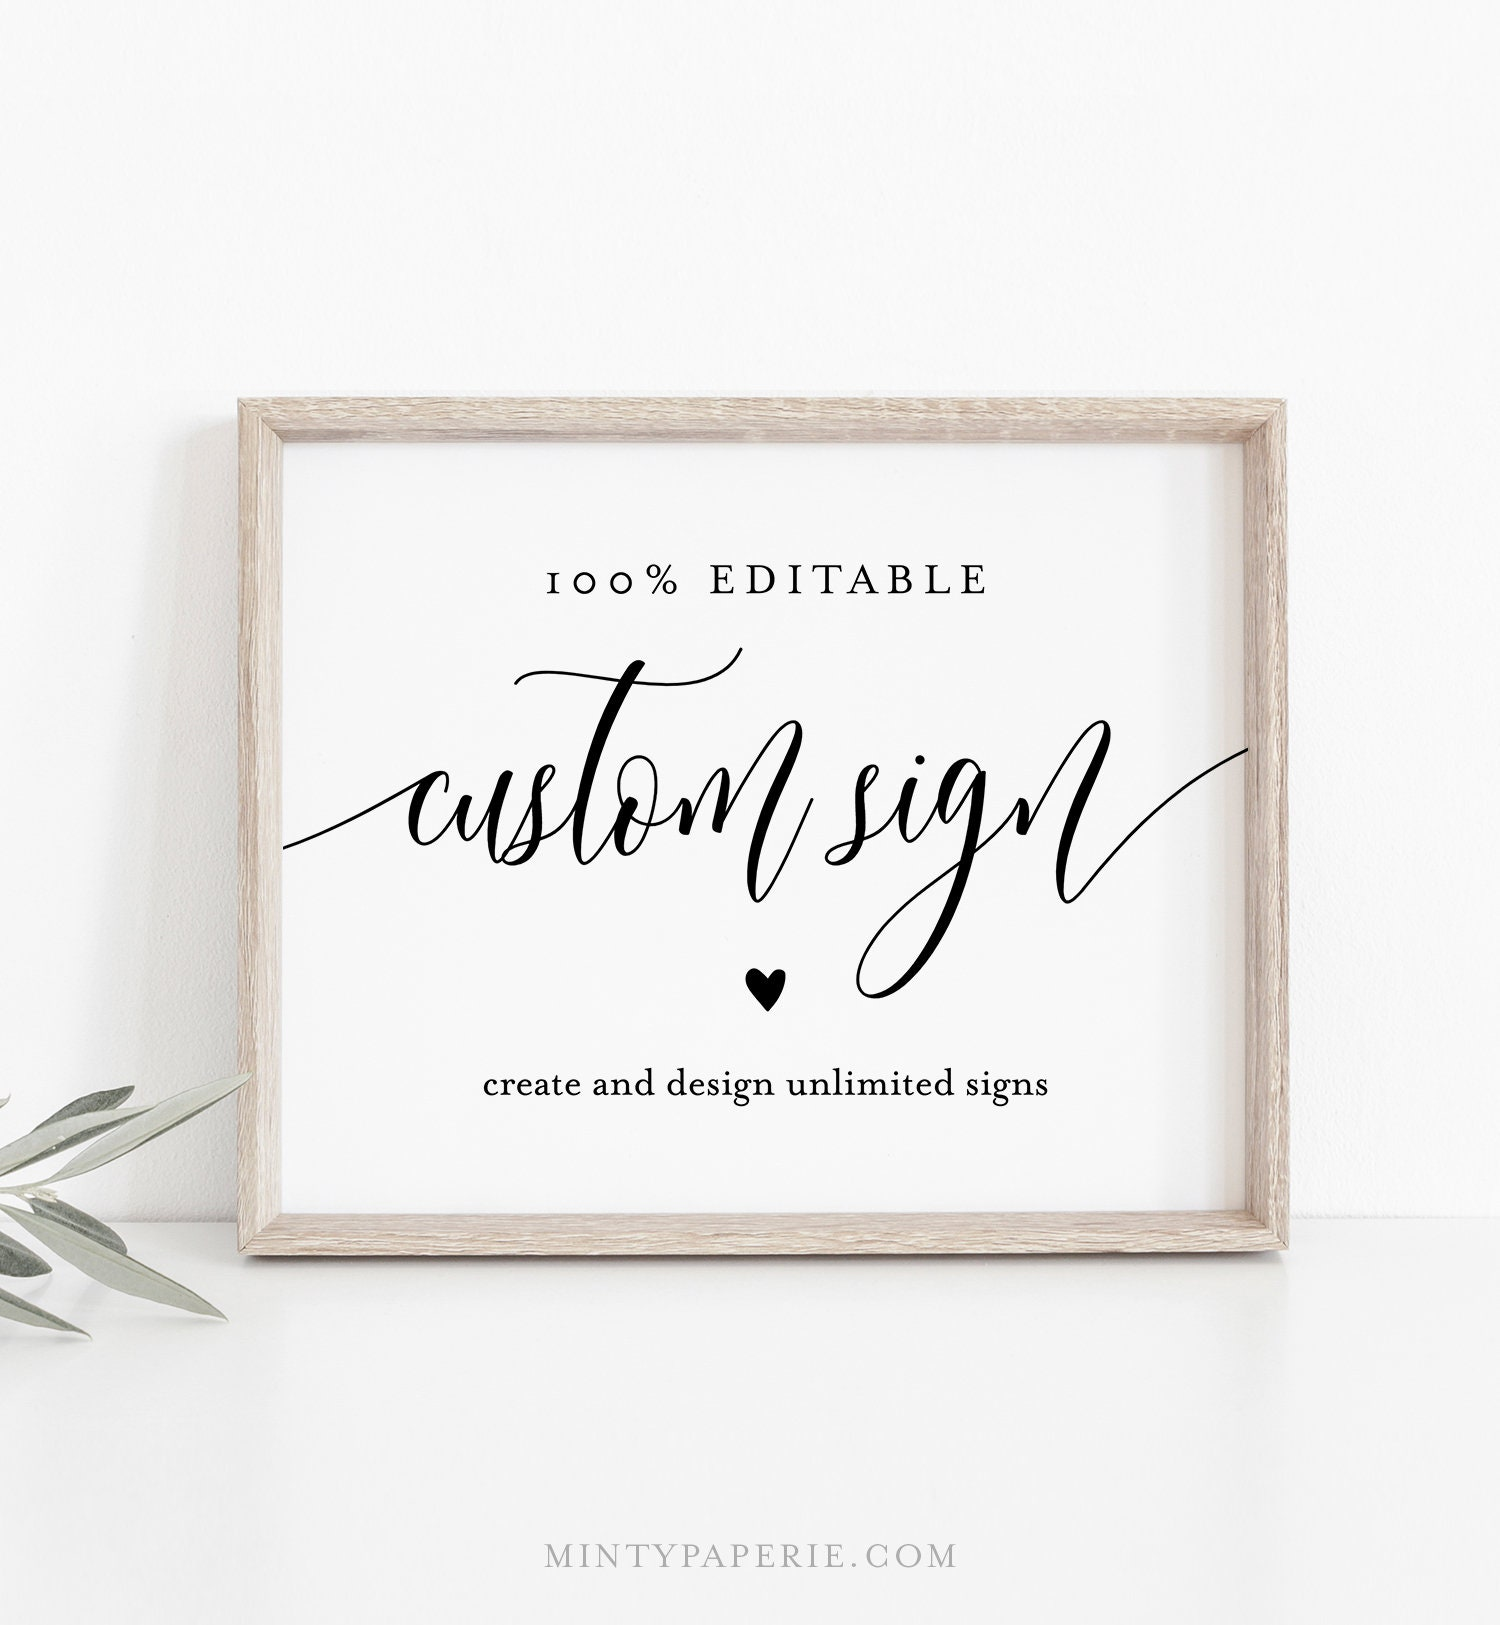 photo about Out of Order Sign Template titled Editable Personalized Marriage Signal Template, Bridal Shower Indication